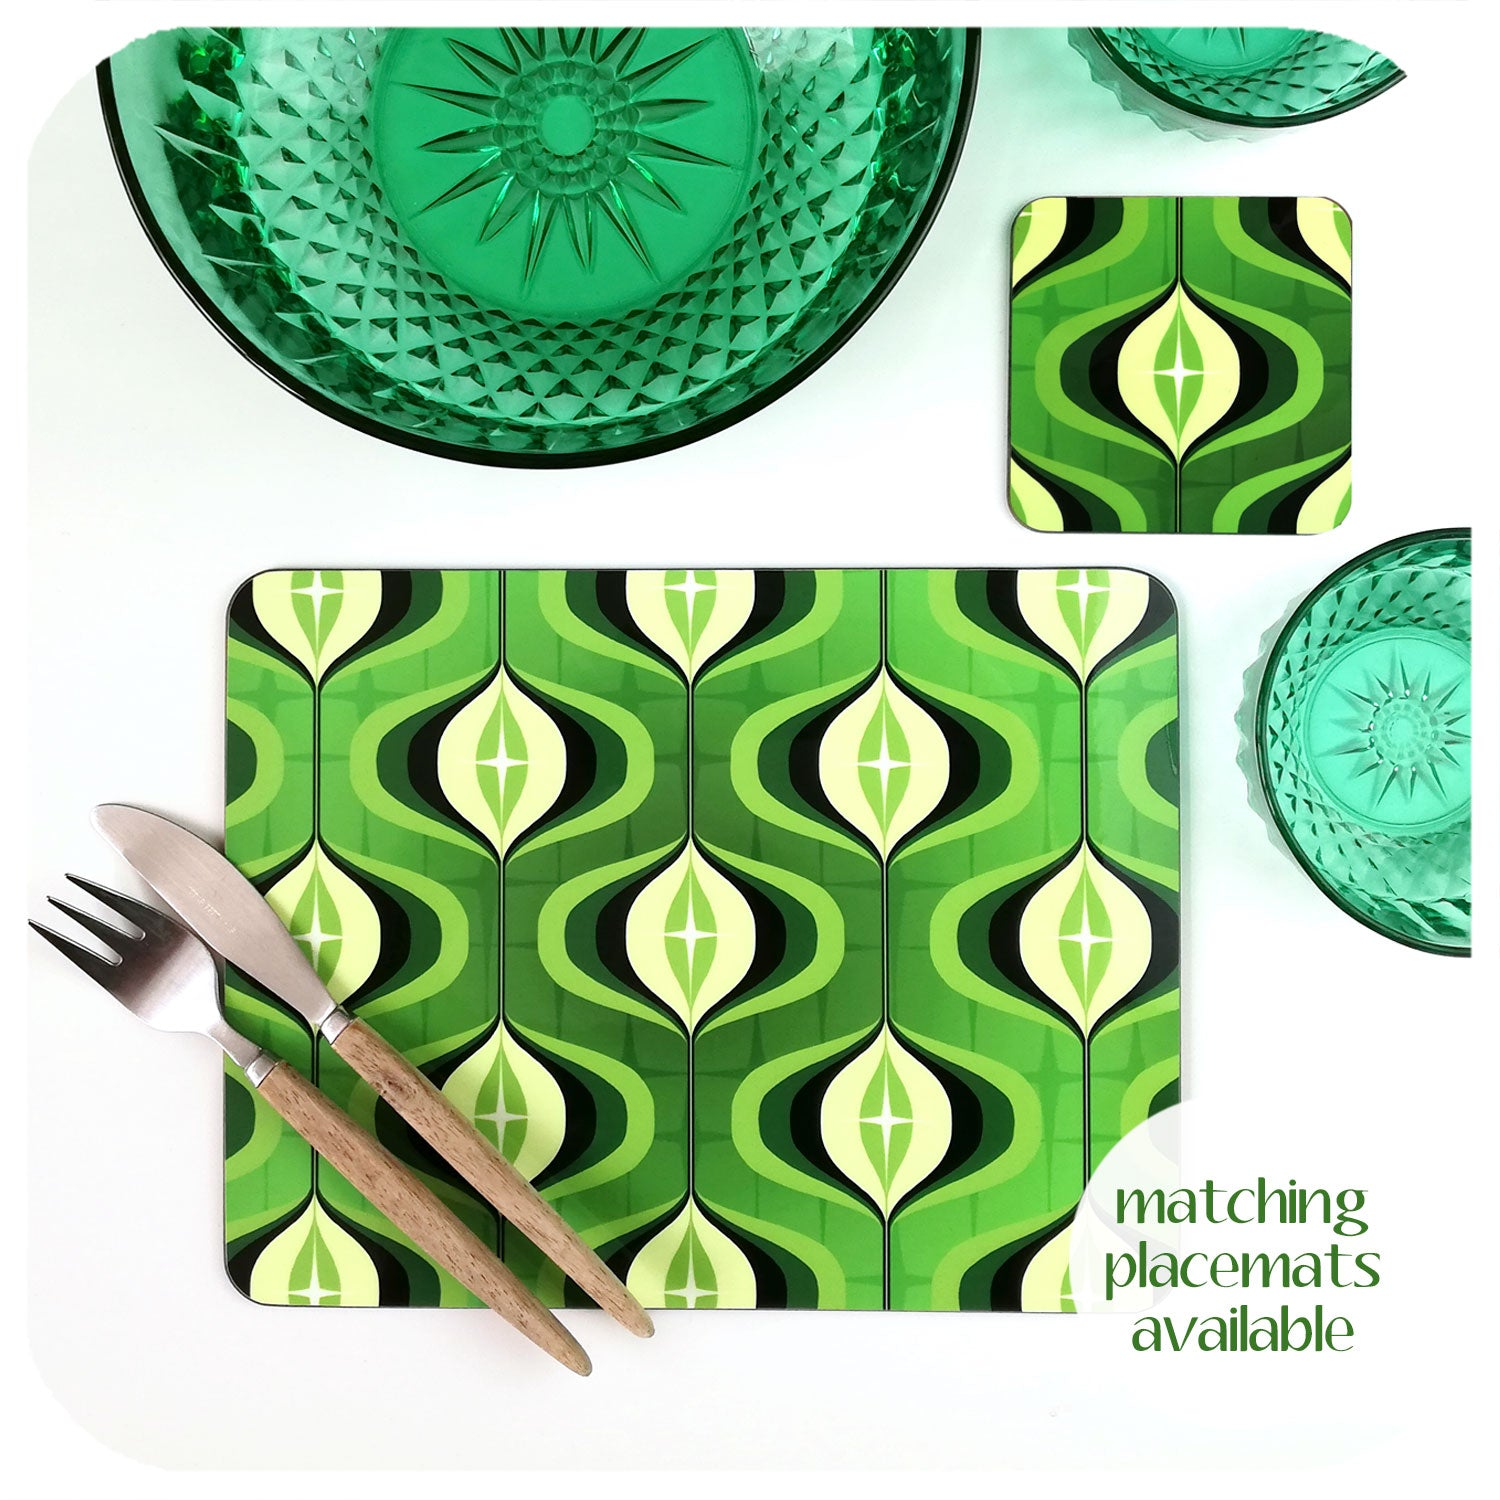 Matching 70s Op Art Placemats available | The Inkabilly Emporium